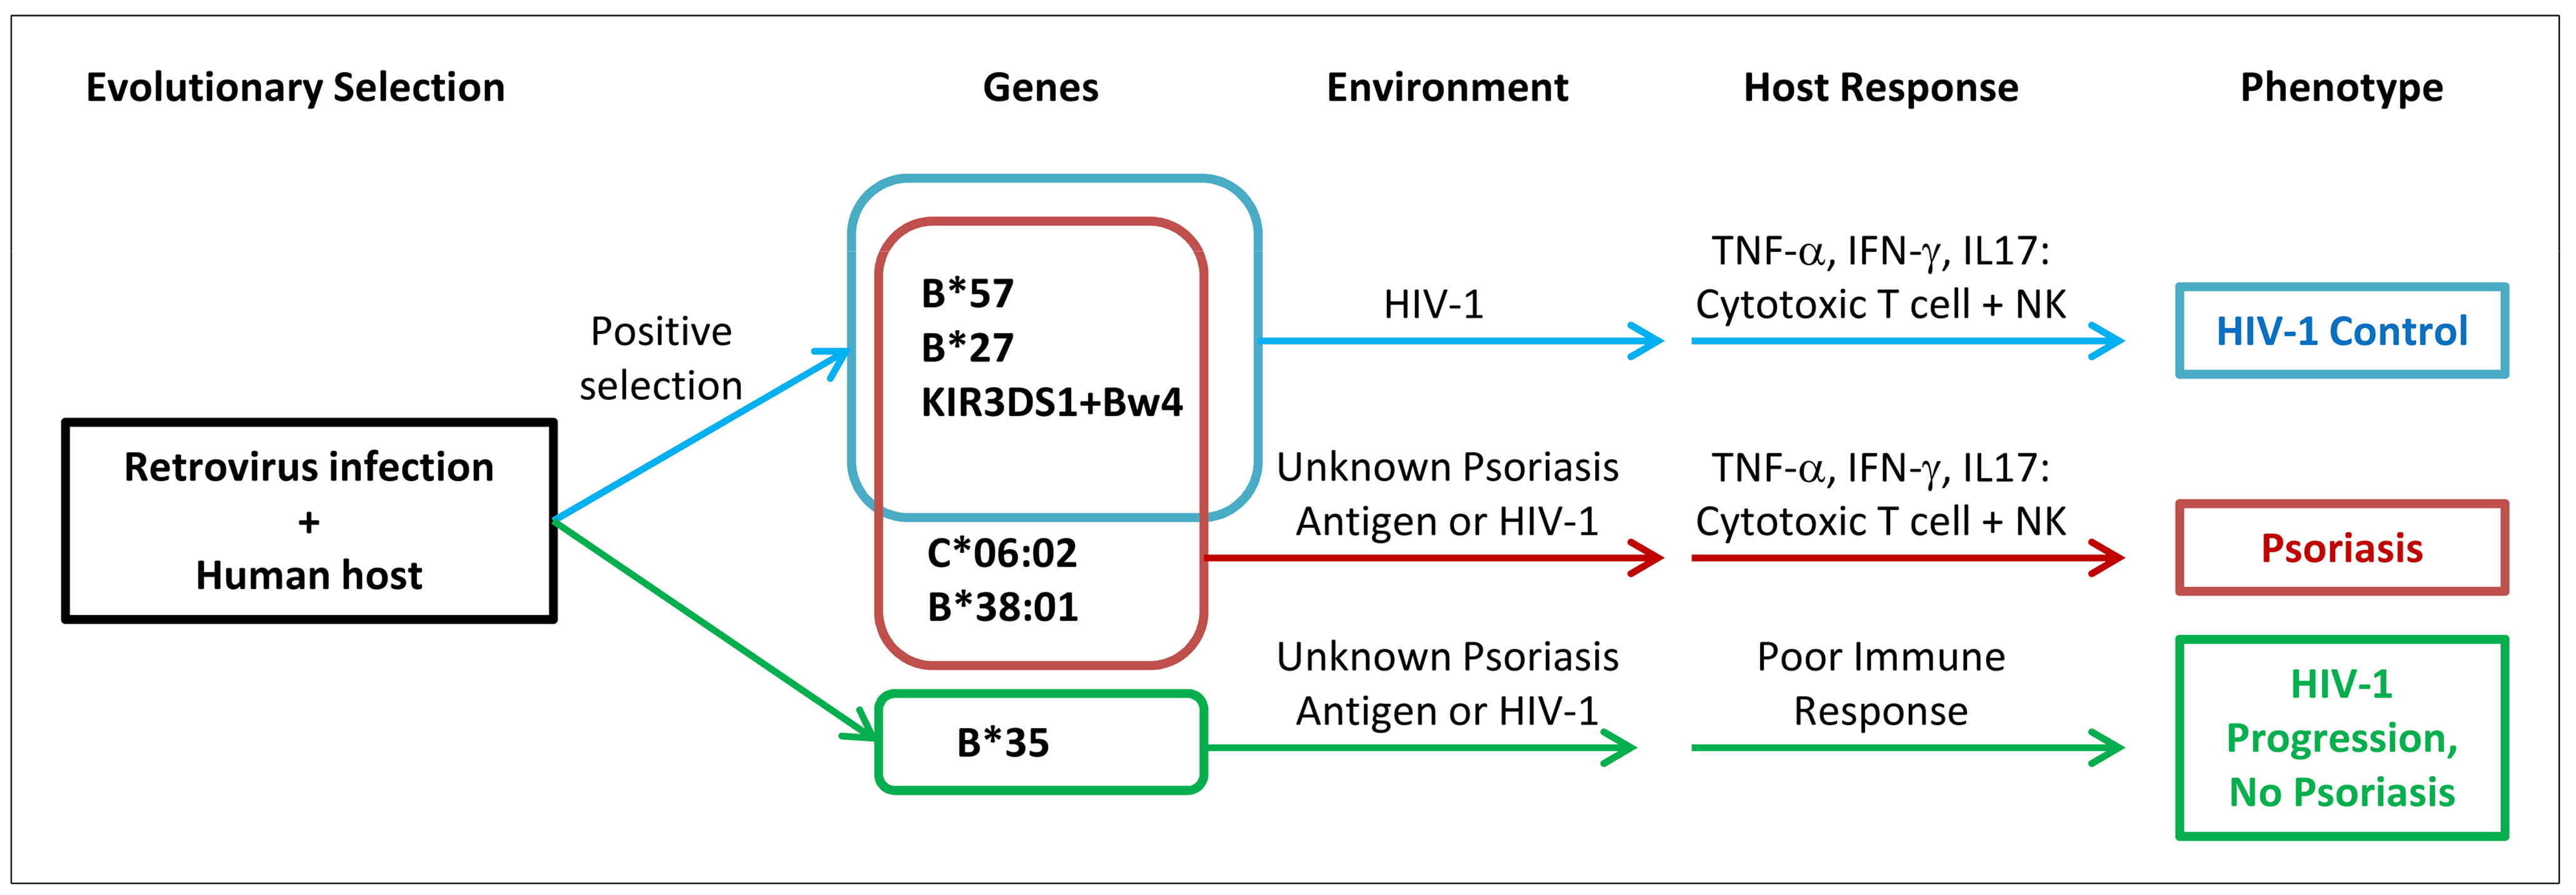 Proposed model of relationship between psoriasis and HIV-1 control.